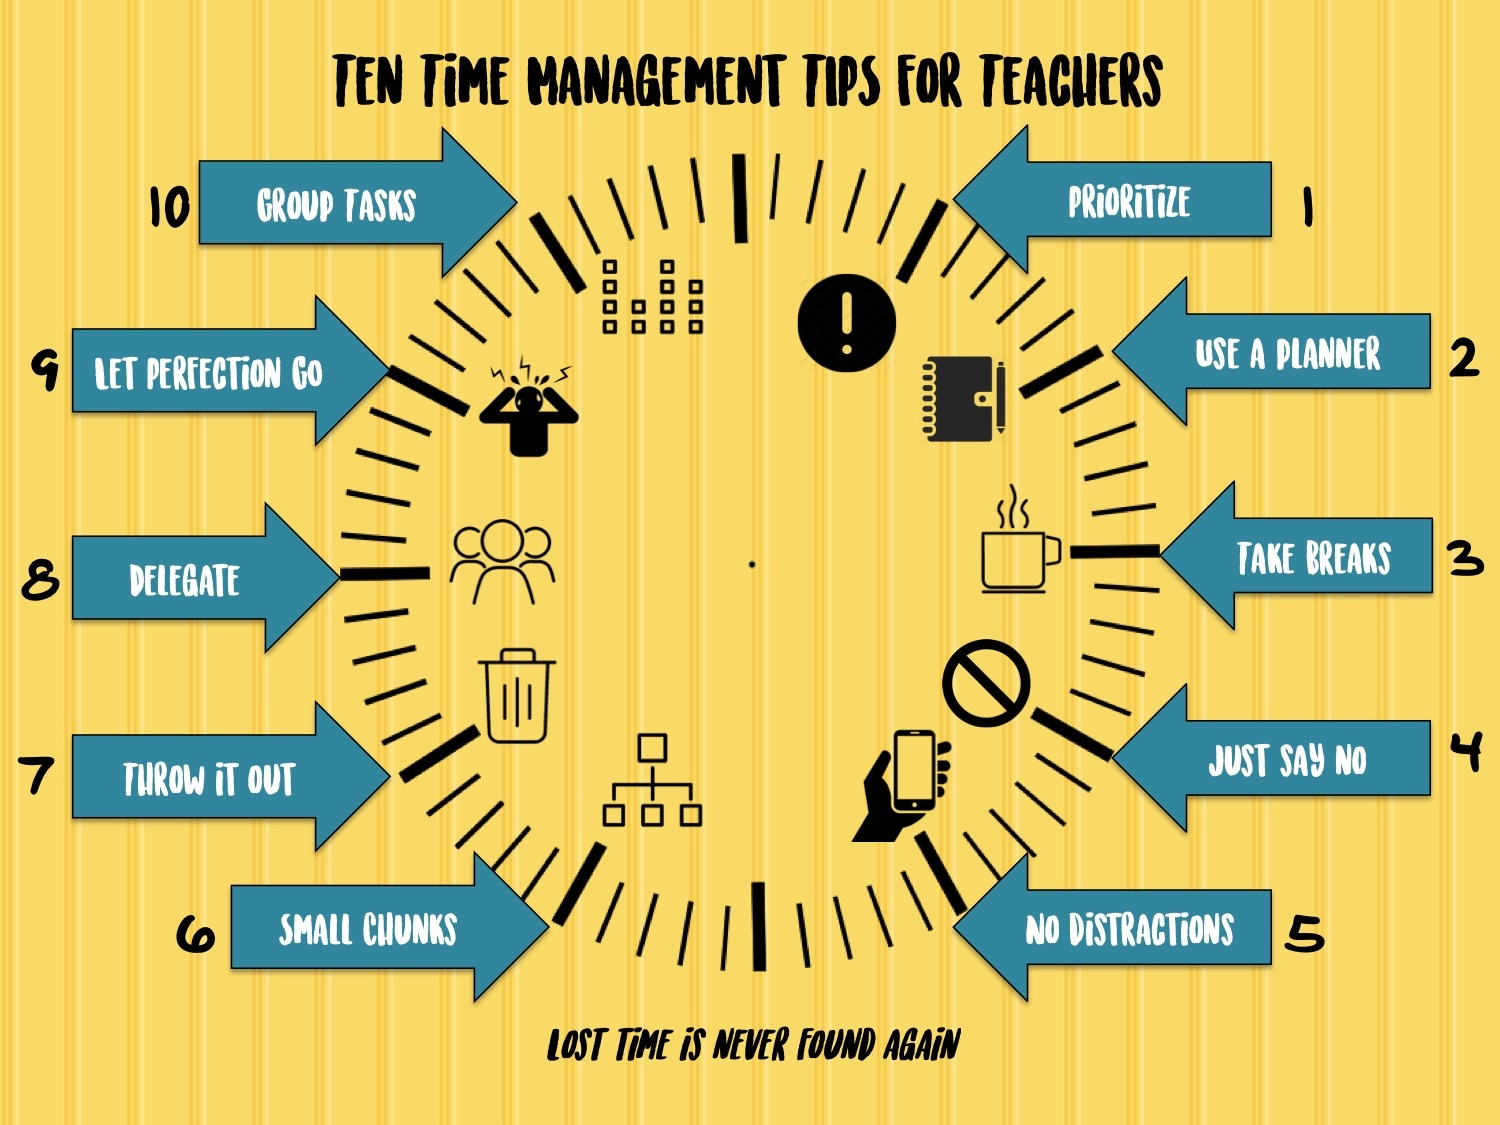 Top 10 Tips for Time Management for Teachers